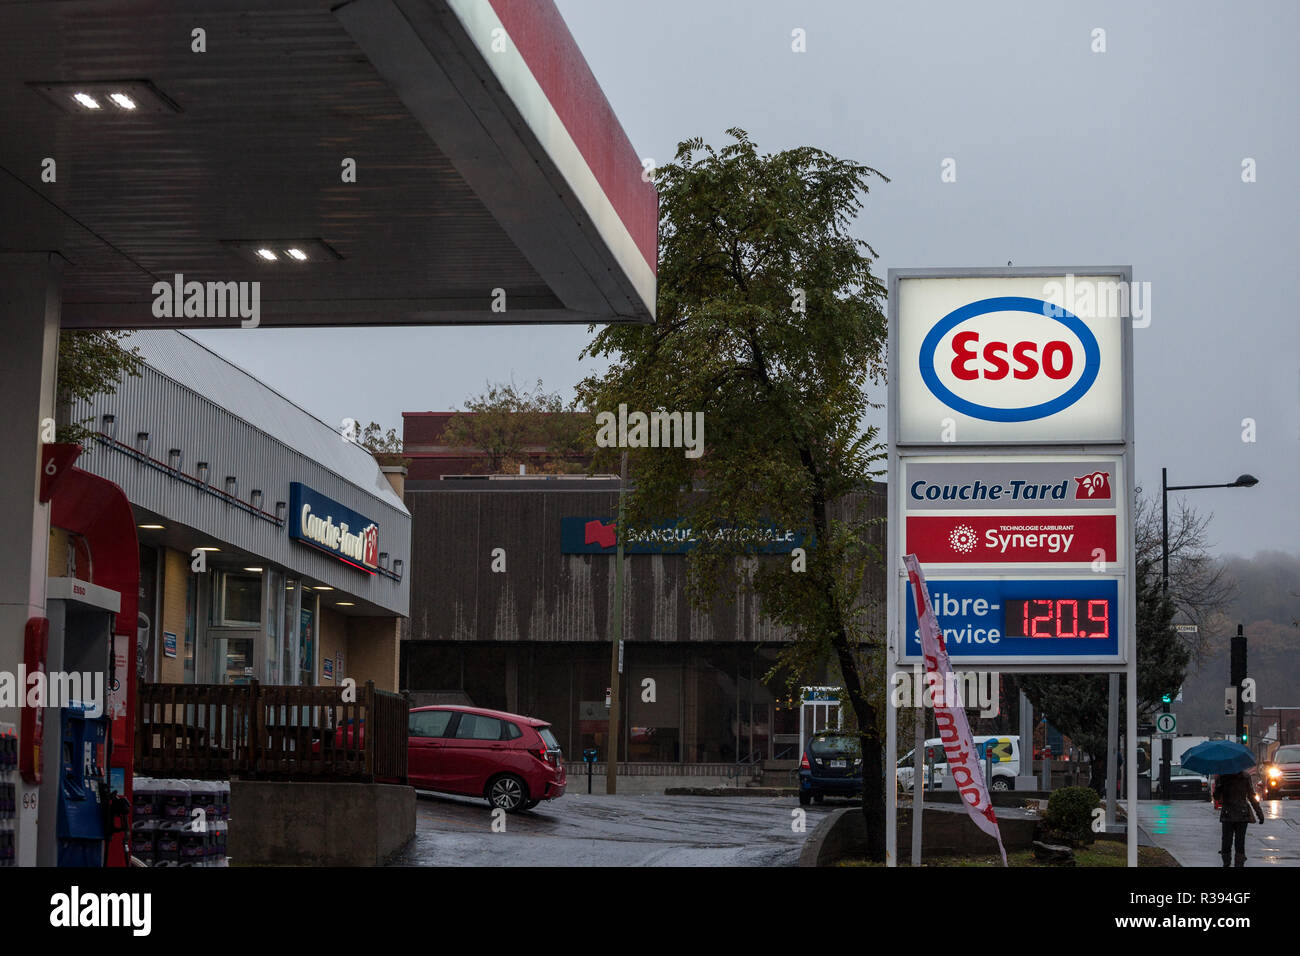 MONTREAL, CANADA - NOVEMBER 3, 2018: Esso logo in front of one of their gas stations in Canada. Esso is one of the petroleum production and sales bran - Stock Image